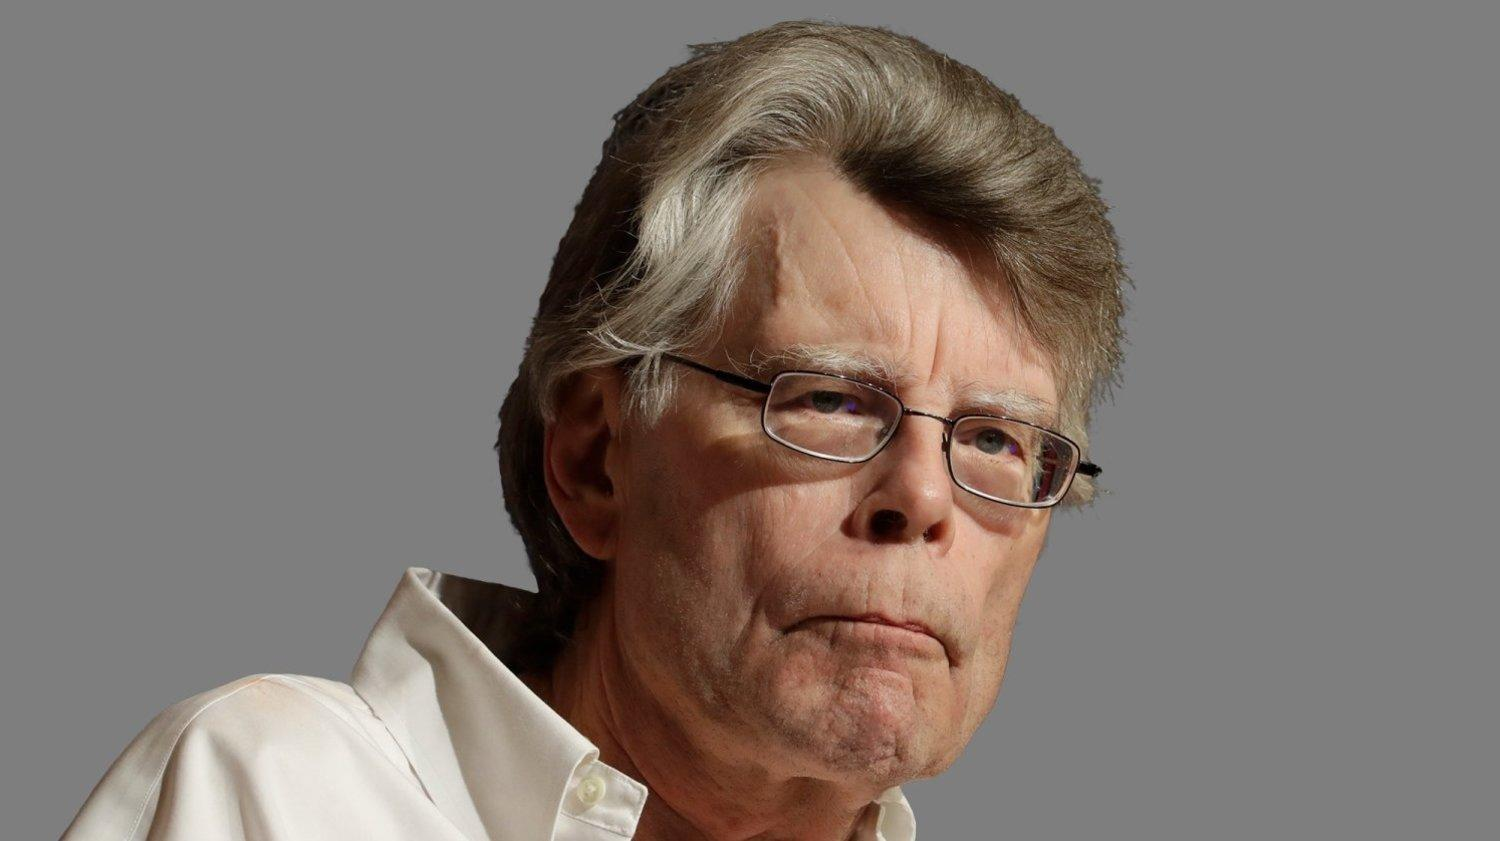 Stephen King Offers $10,000 For A Trump Border Wall Debate